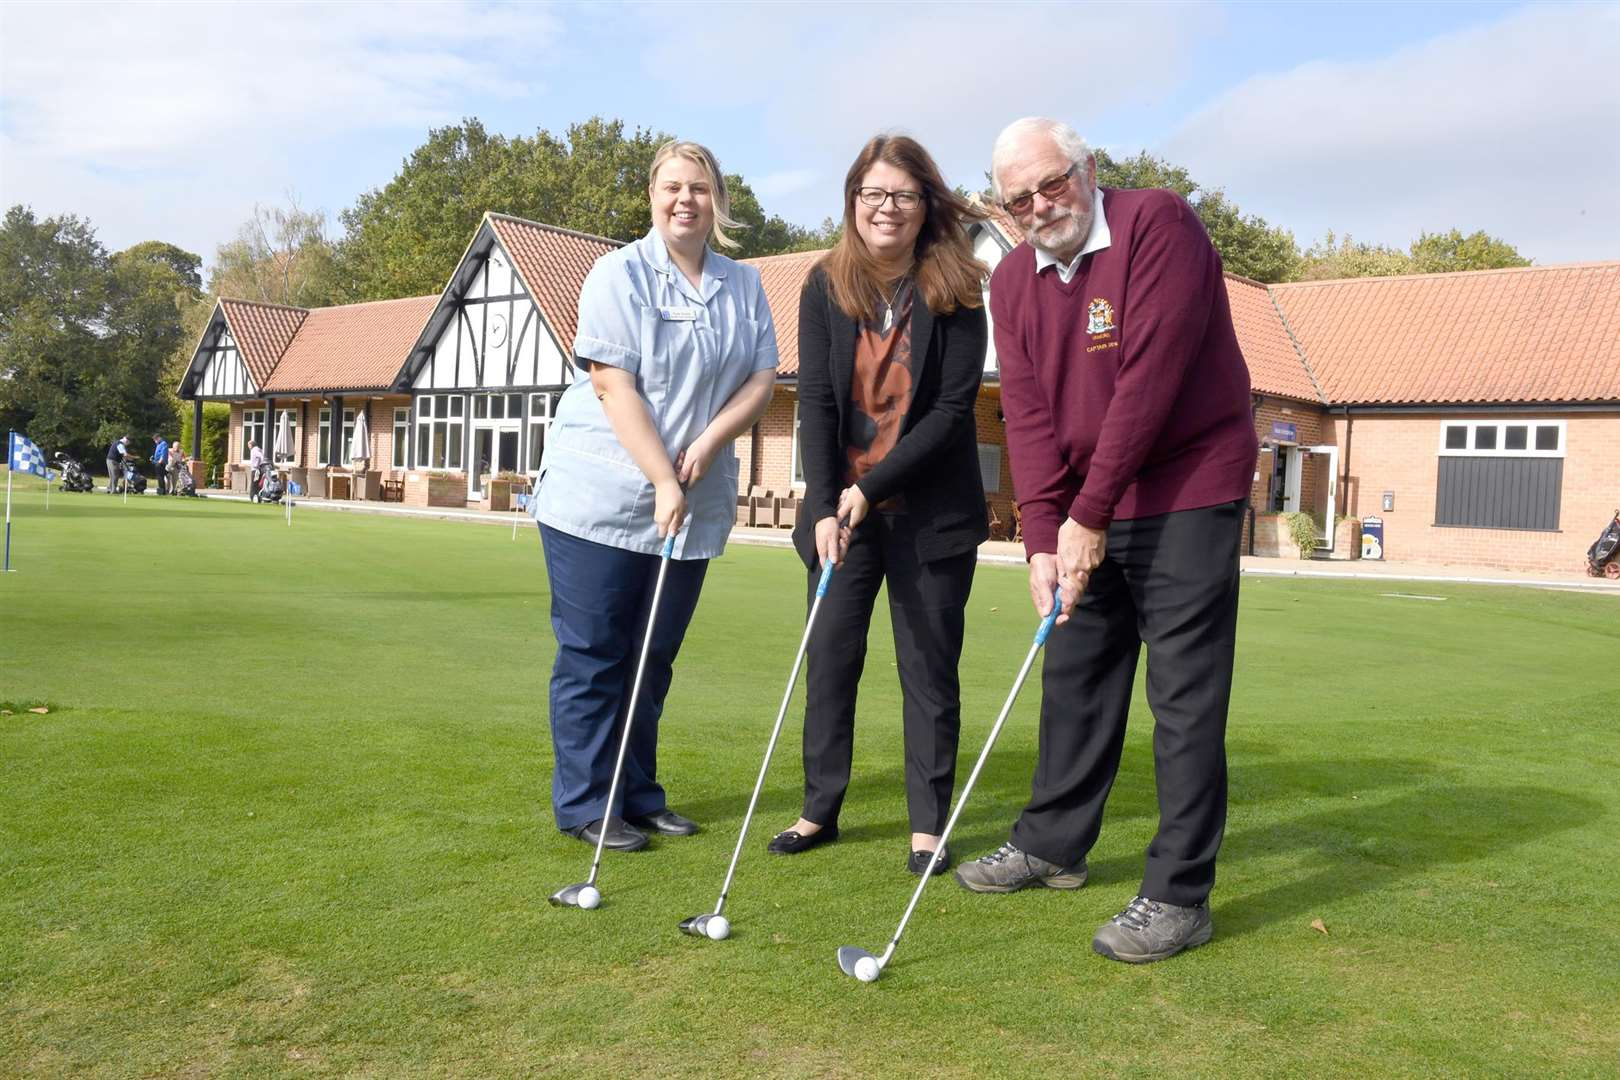 Newark Golf Club Seniors present cheques to charities after fundraising throughout the year..L-R Mrs Rose Turner - health and care assistant at Beaumond Hospice, Mrs Kate Baxter - Childrens' Bereavement Centre, director, Keith Martin Seniors' Captain.. (4608039)